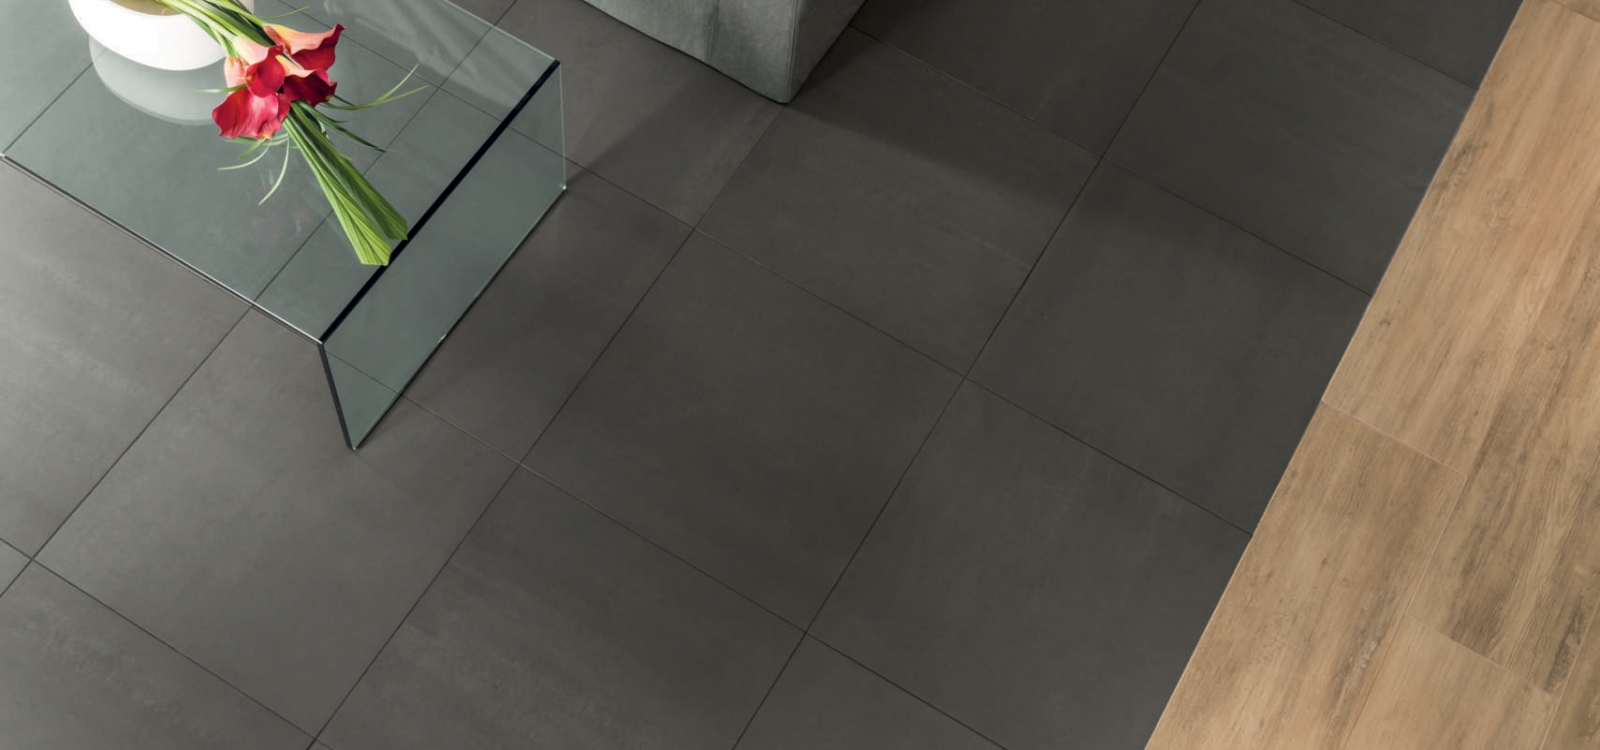 how to choose the color of grout lines